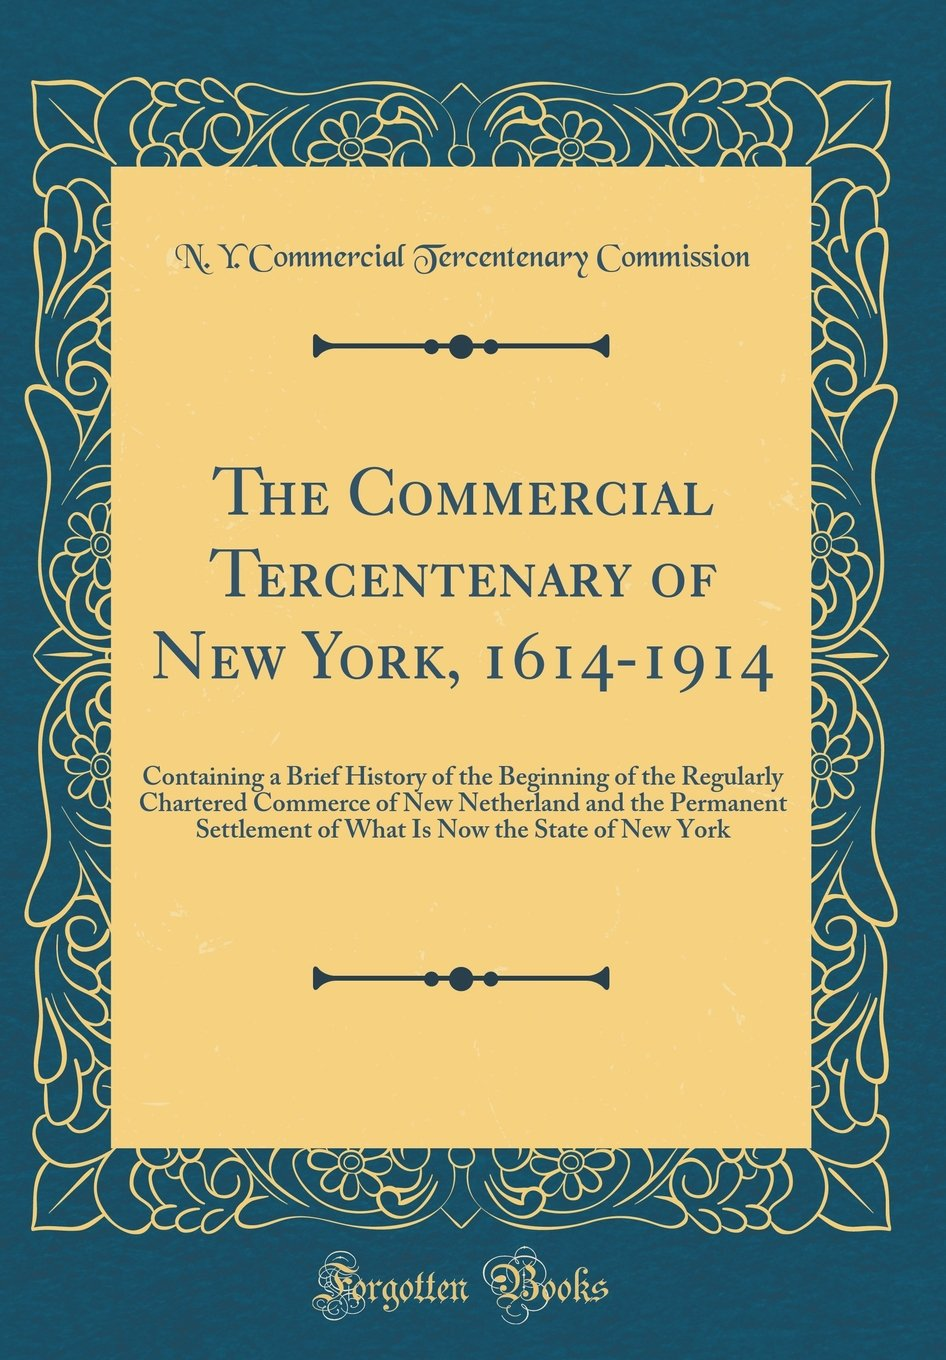 Download The Commercial Tercentenary of New York, 1614-1914: Containing a Brief History of the Beginning of the Regularly Chartered Commerce of New Netherland ... Now the State of New York (Classic Reprint) ebook